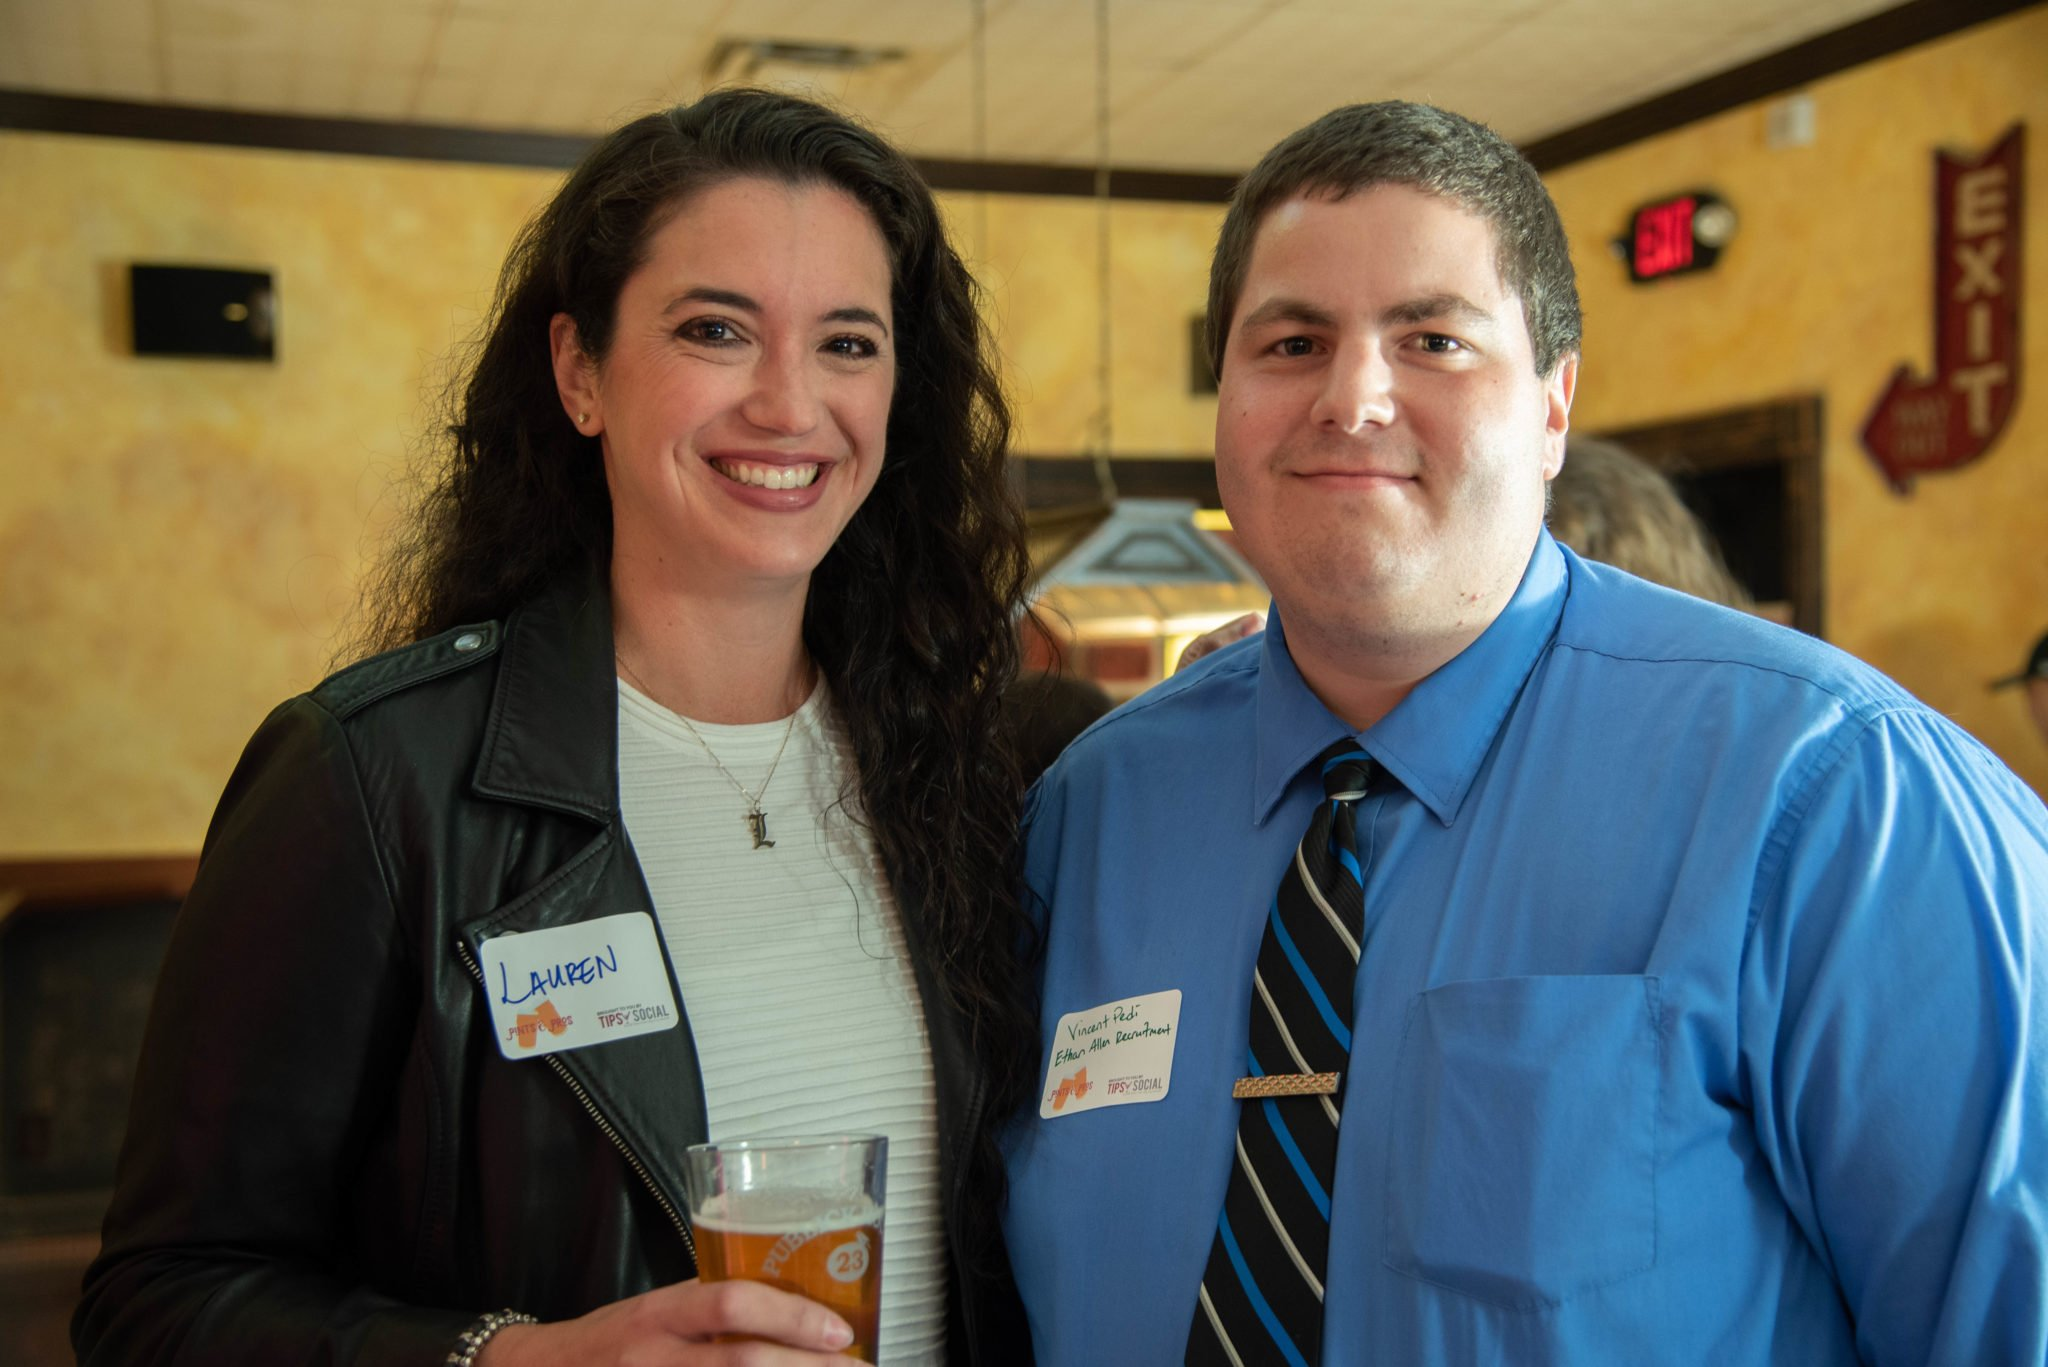 Lauren Naru and Vinnie Pedi Pose Together at Pints & Pros